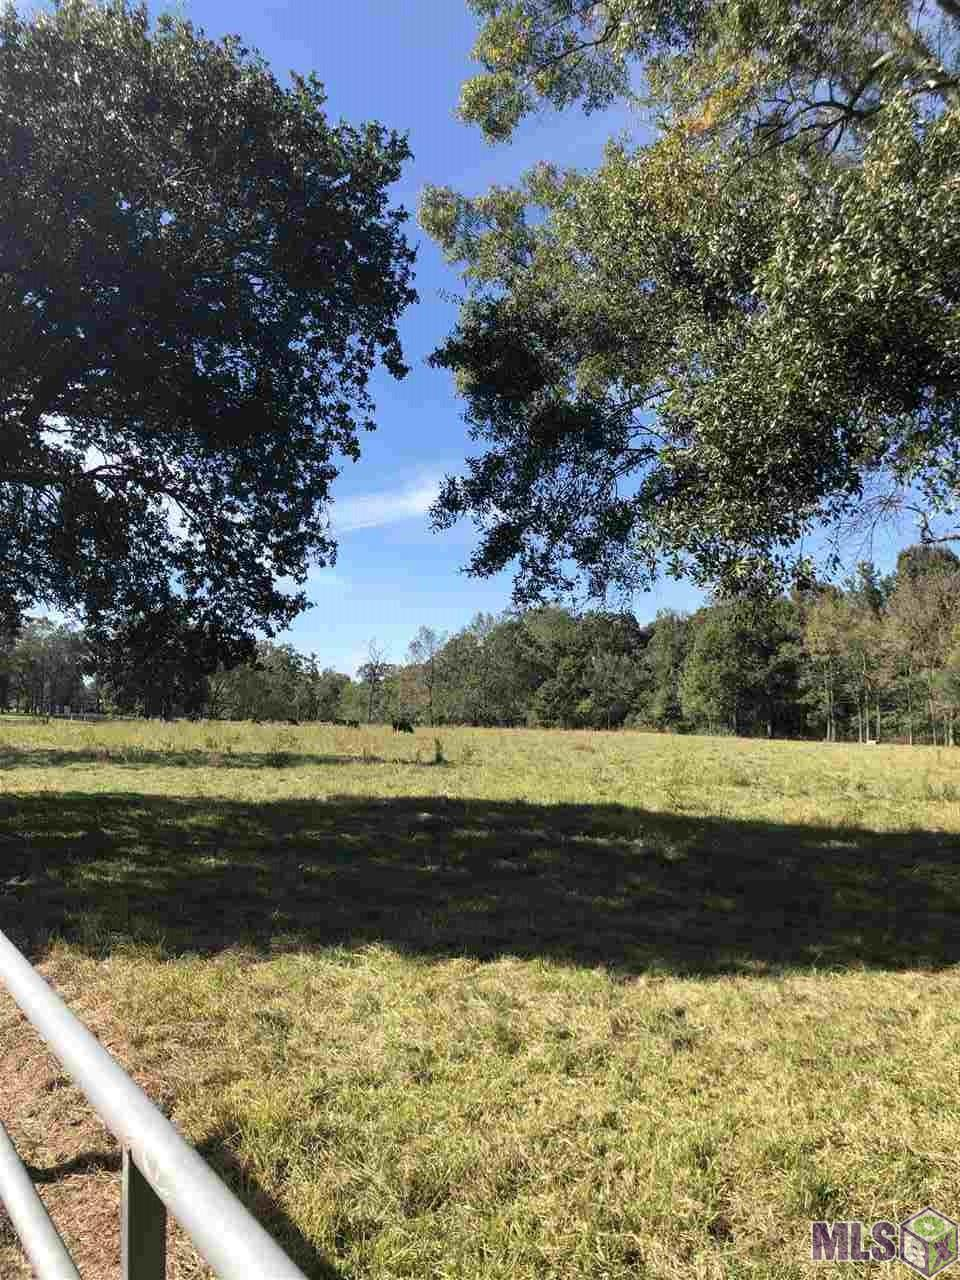 """Beautiful tract of land - 13.44 ACRES **PART OF THE LAND IS FLOOD ZONE """"X"""" - so if your house is built on that portion - no flood insurance will be required.**  DUTCHTOWN  SCHOOLS!! YOU MUST SEE this property to  APPRECIATE...you will be amazed!! THERE IS A TOTAL OF 13.44 ACRES - SELLER WILL SELL ALL 13.44 ACRES OR SPLIT INTO 2 TRACTS (4.6 & 8.84). DID NOT FLOOD in 2016."""